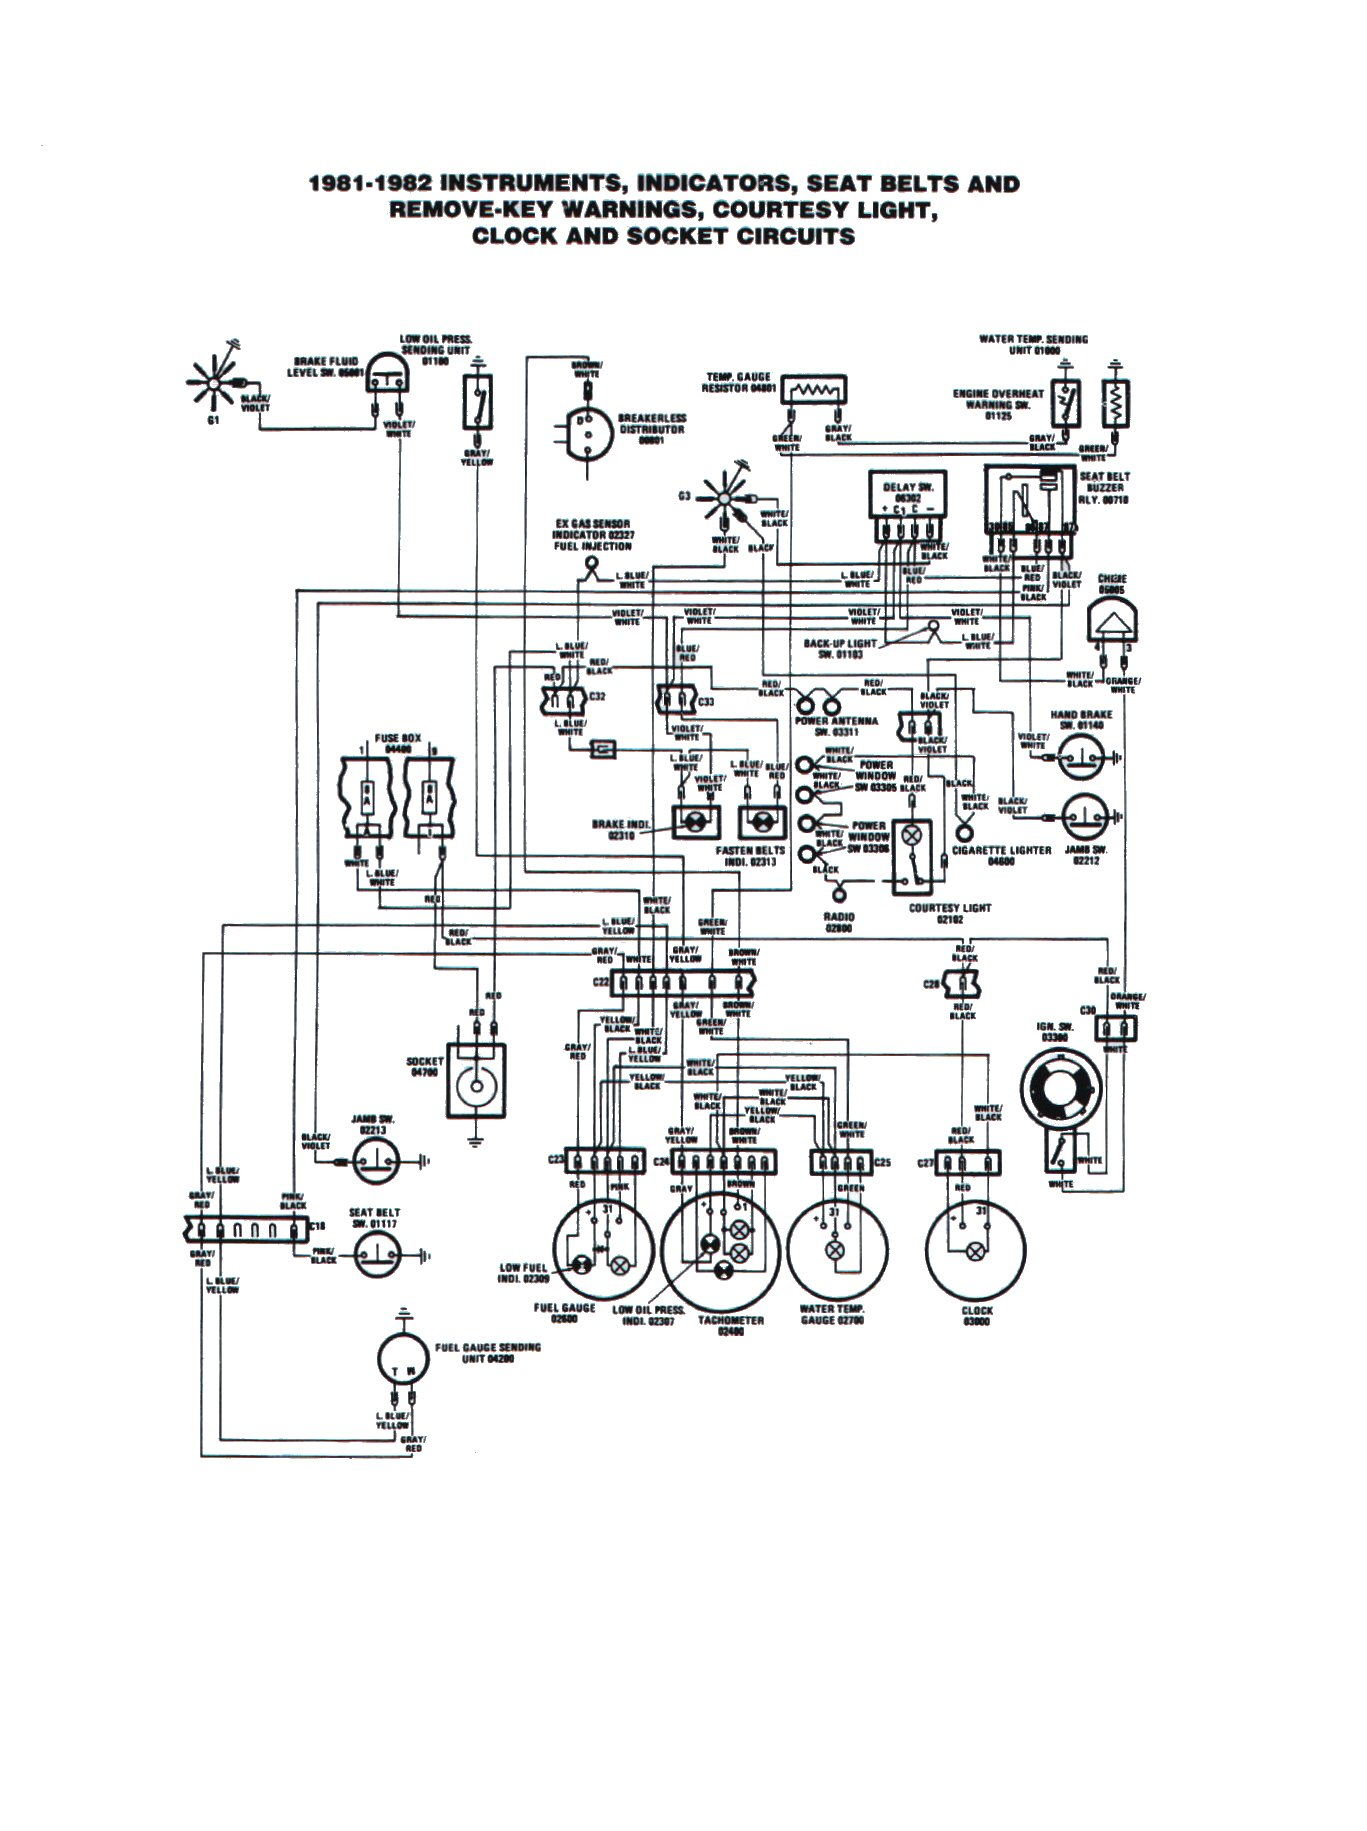 fiat spider wiring diagram u haul 4 way flat 1979 ignition diagrams 1980